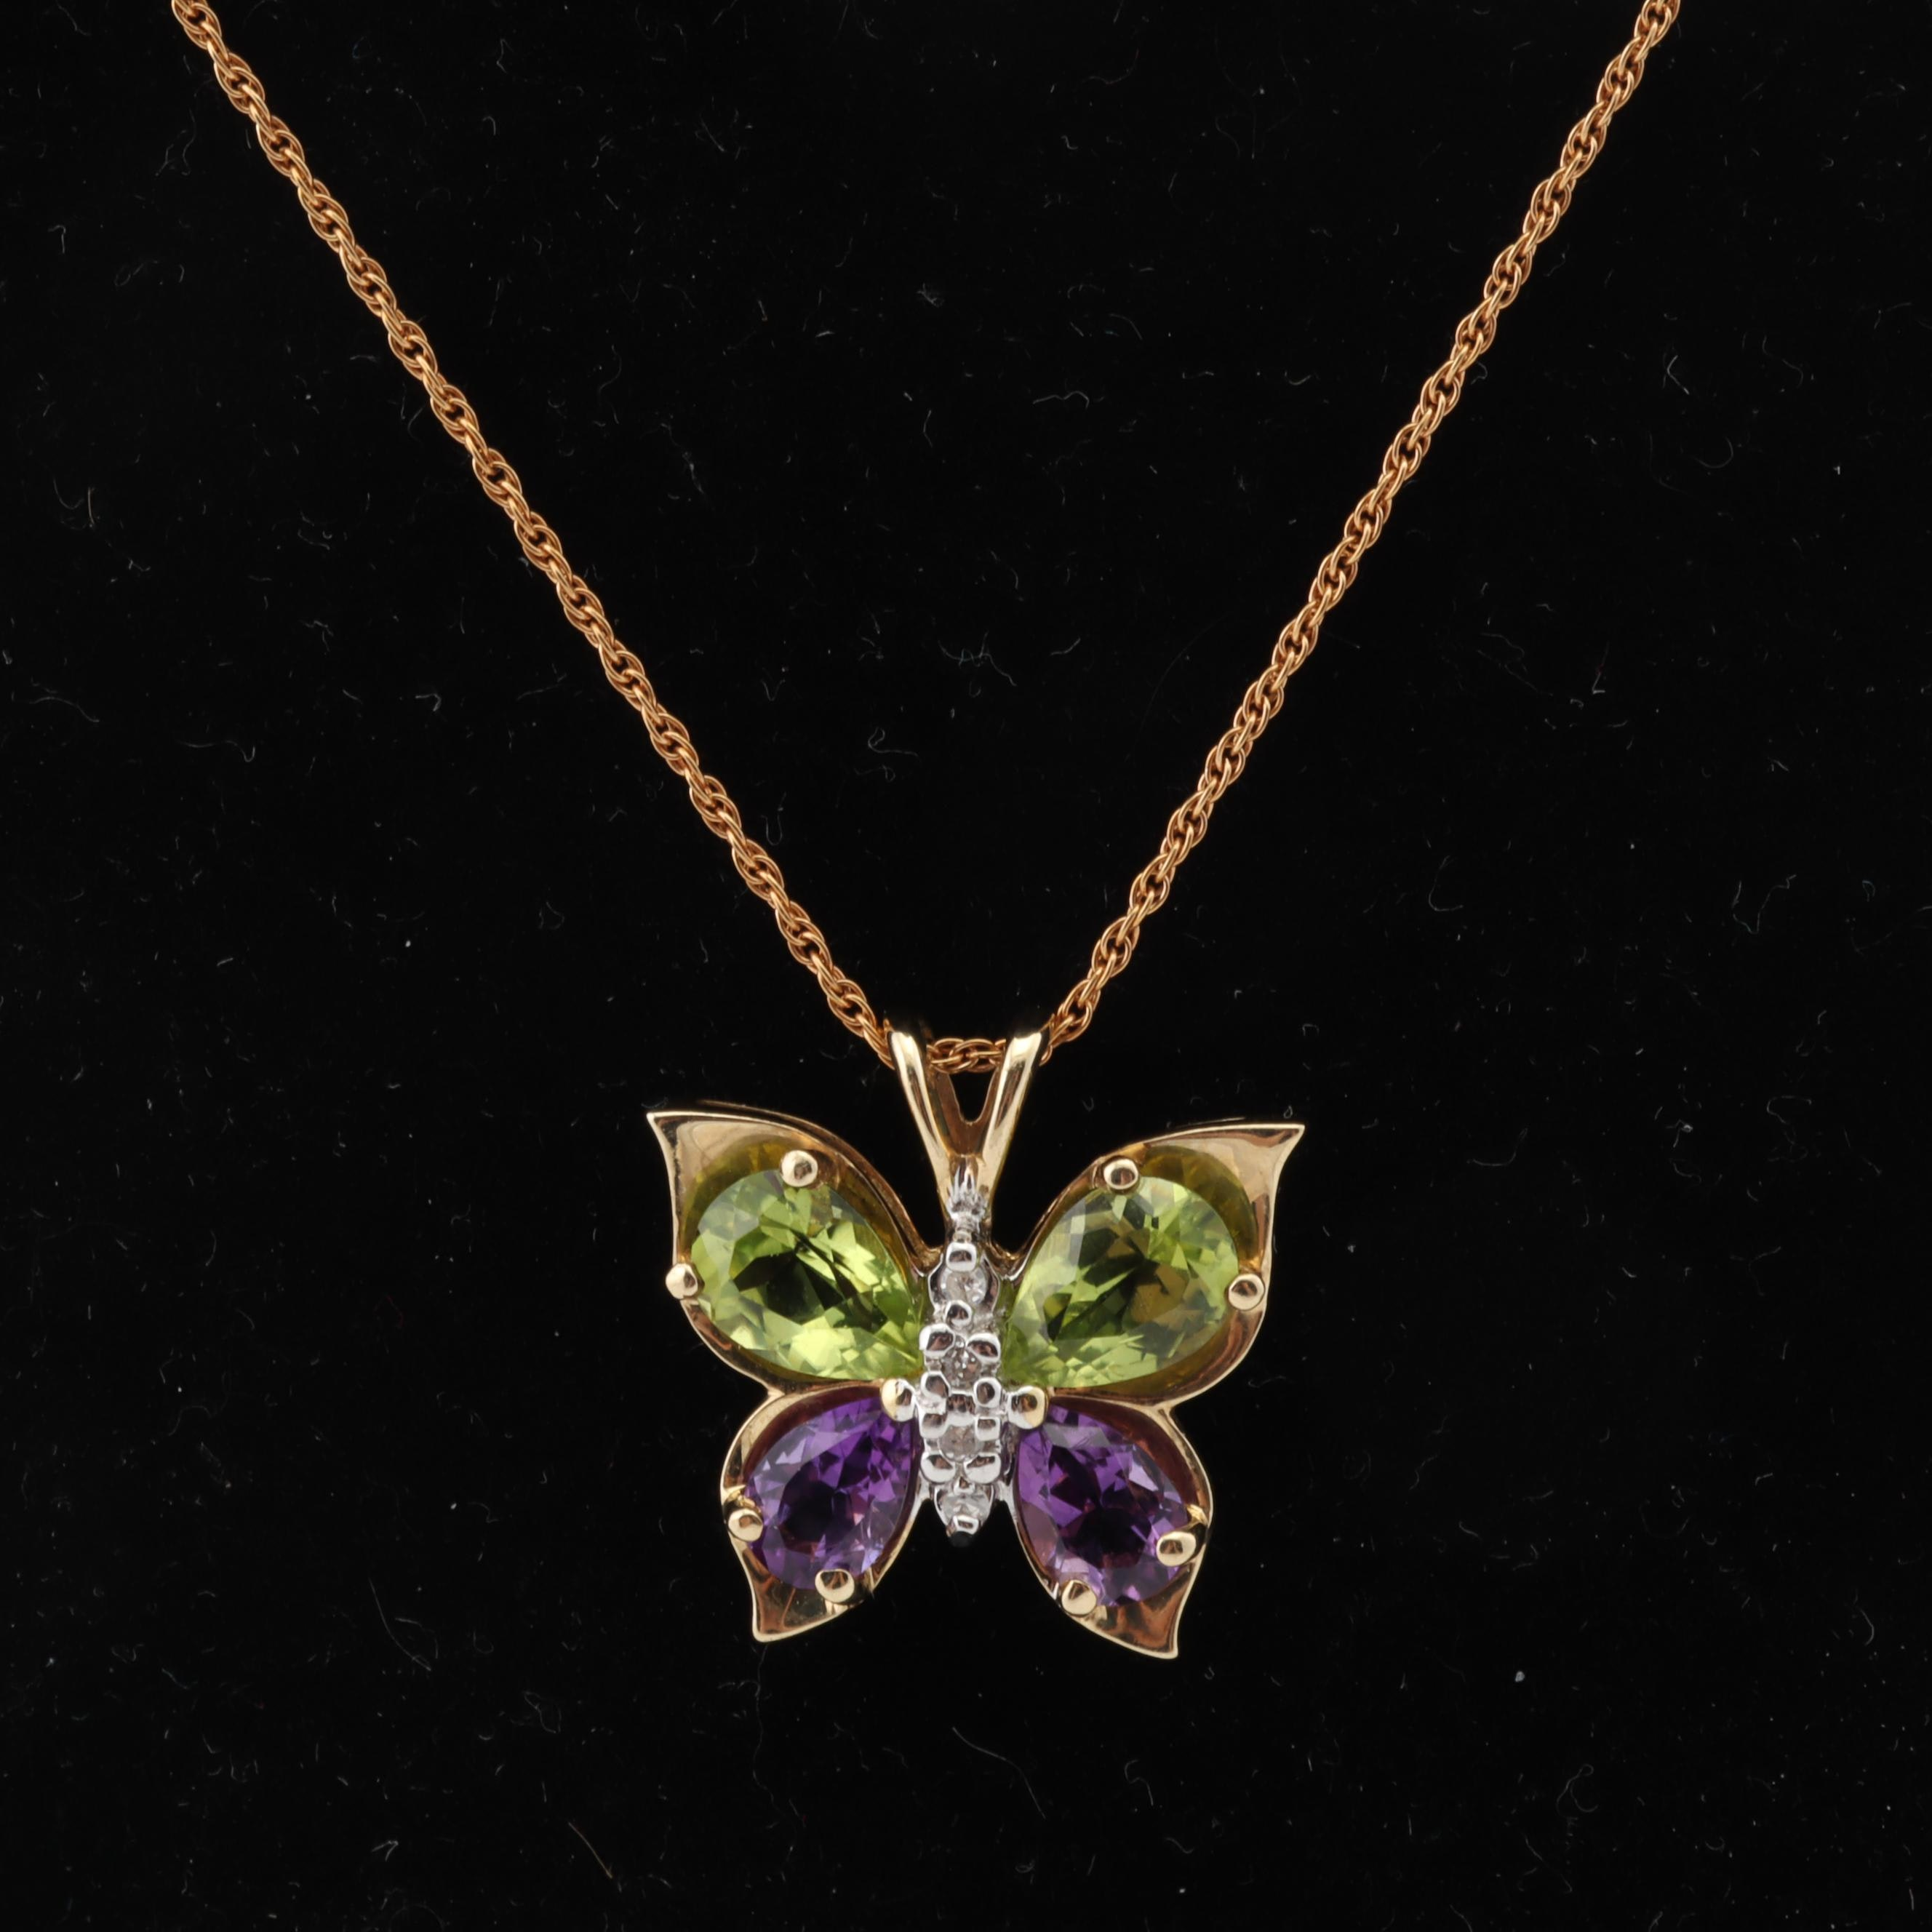 14K Yellow Gold Diamond, Amethyst and Peridot Butterfly Necklace